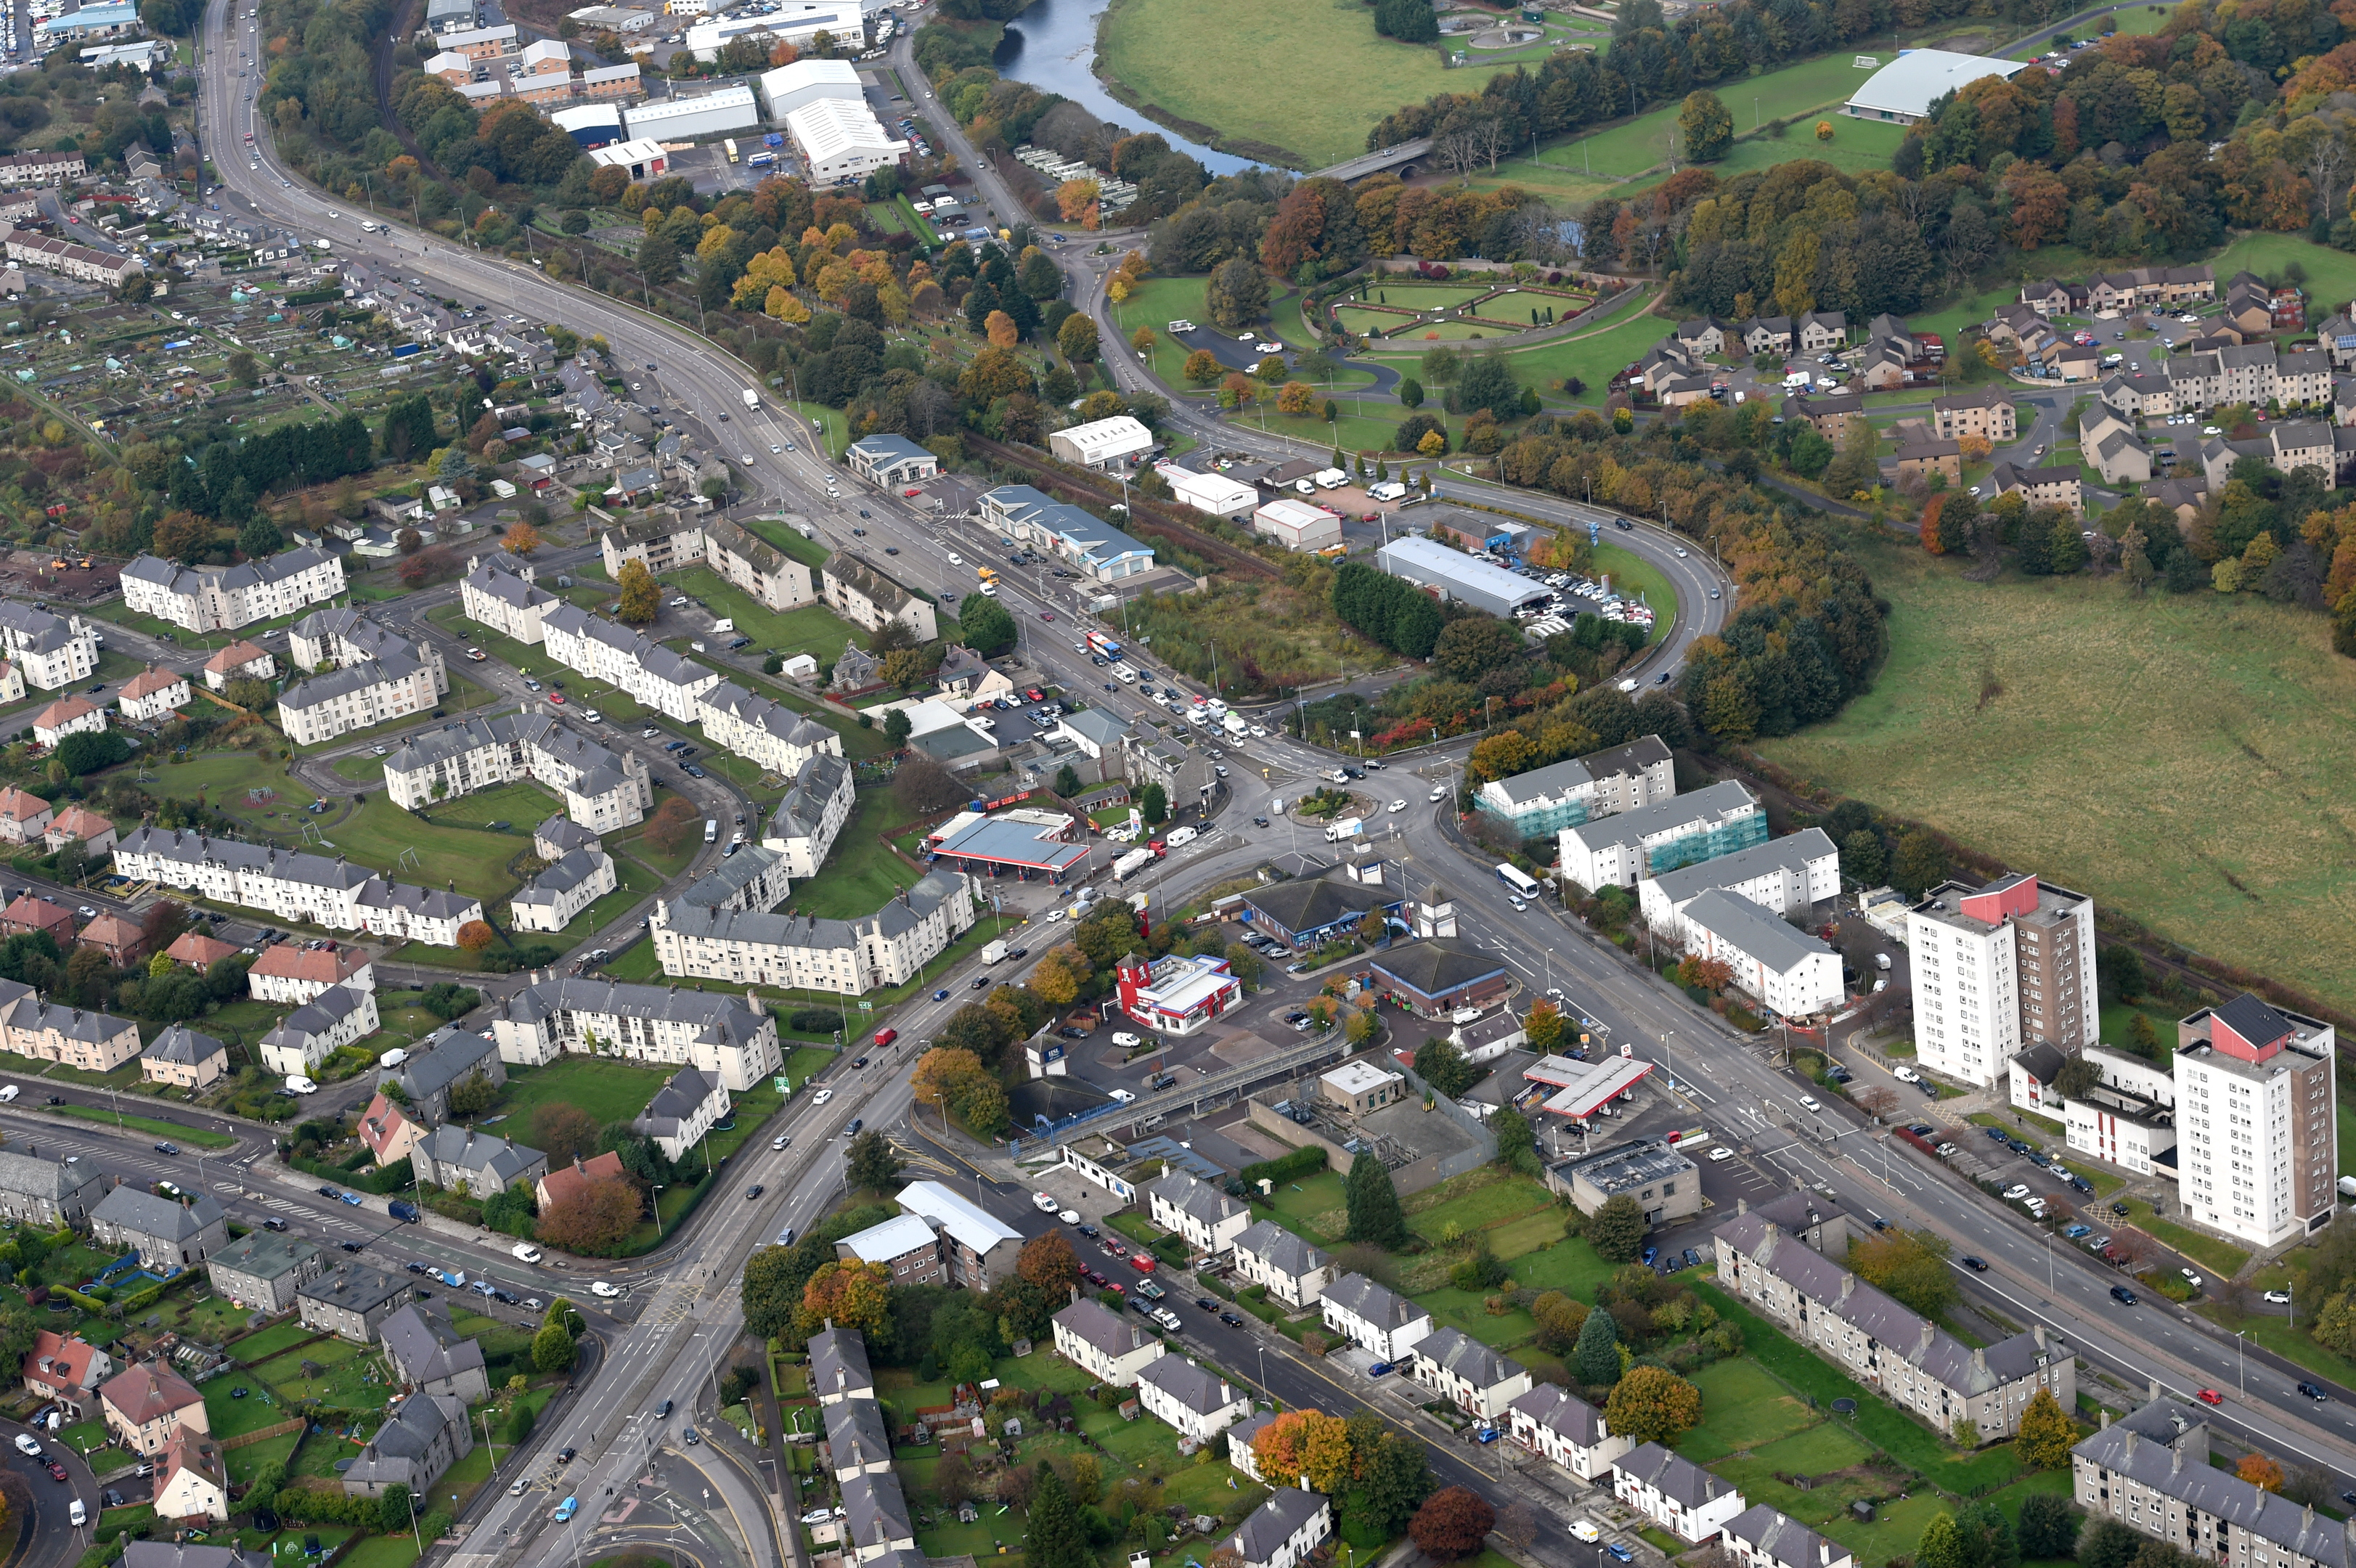 Haudagain Roundabout.  Picture by hjs helicopters